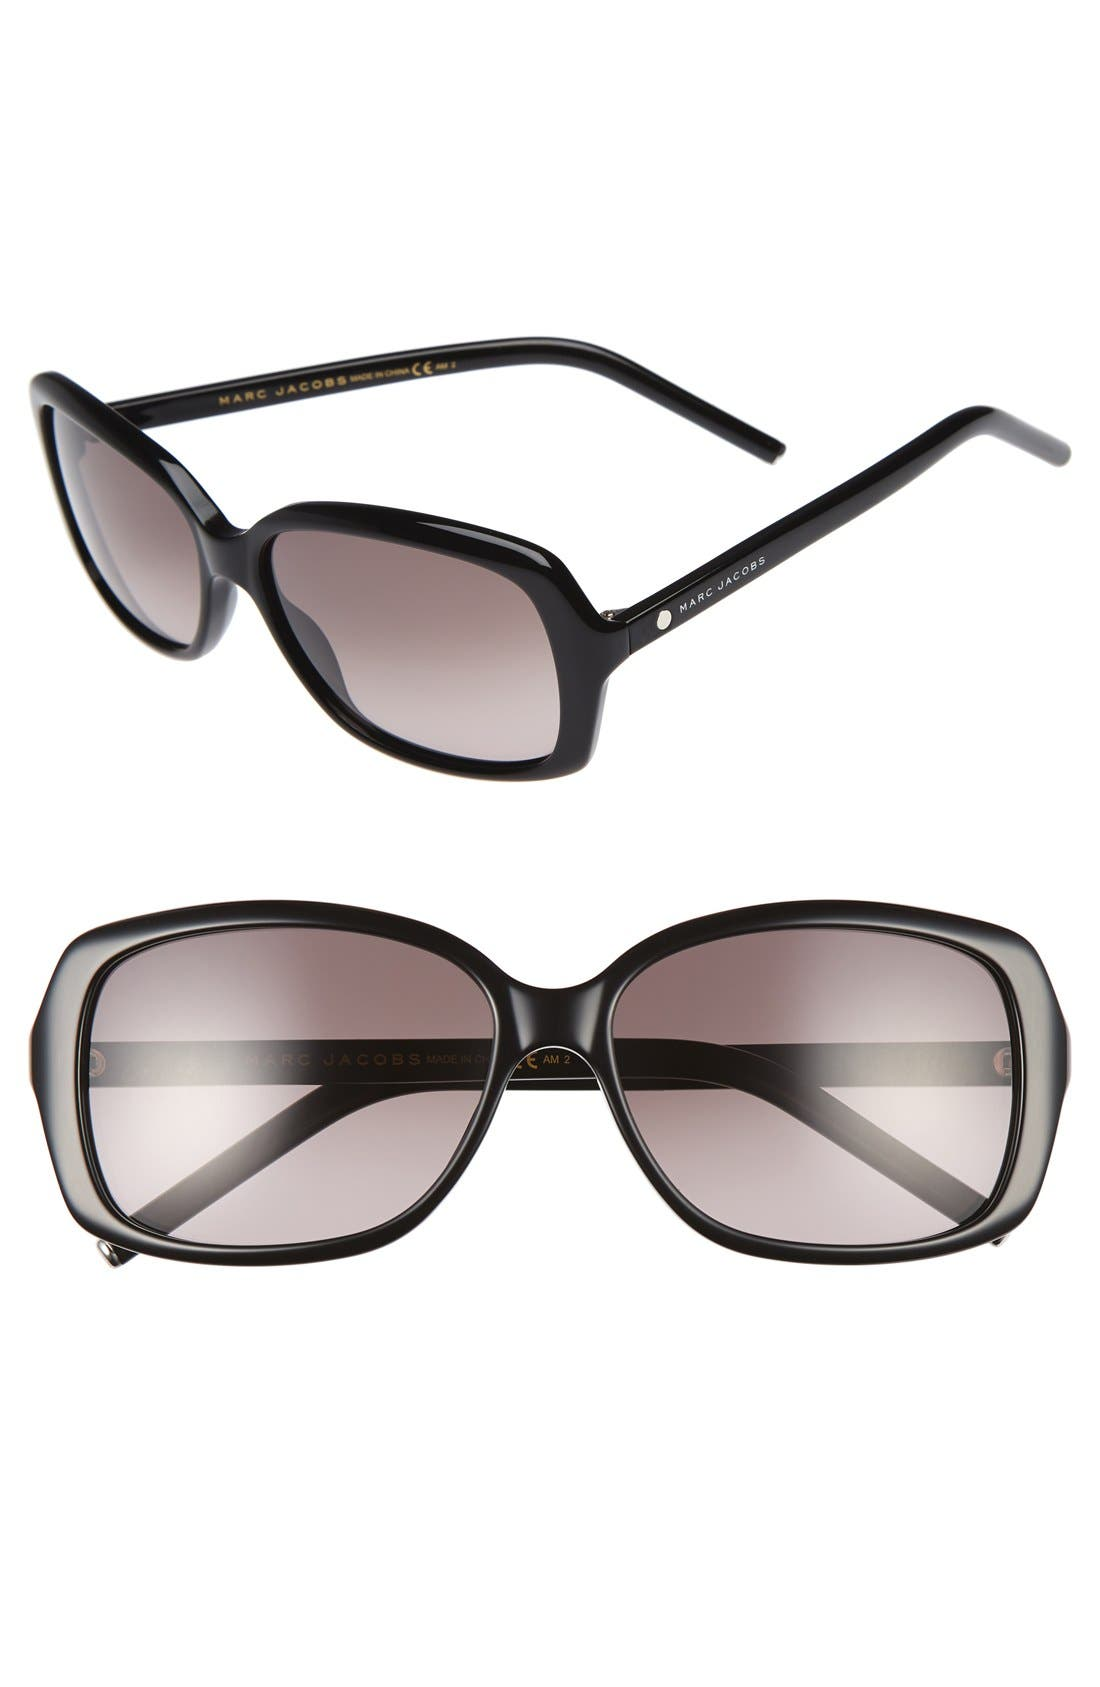 MARC JACOBS 57mm Sunglasses